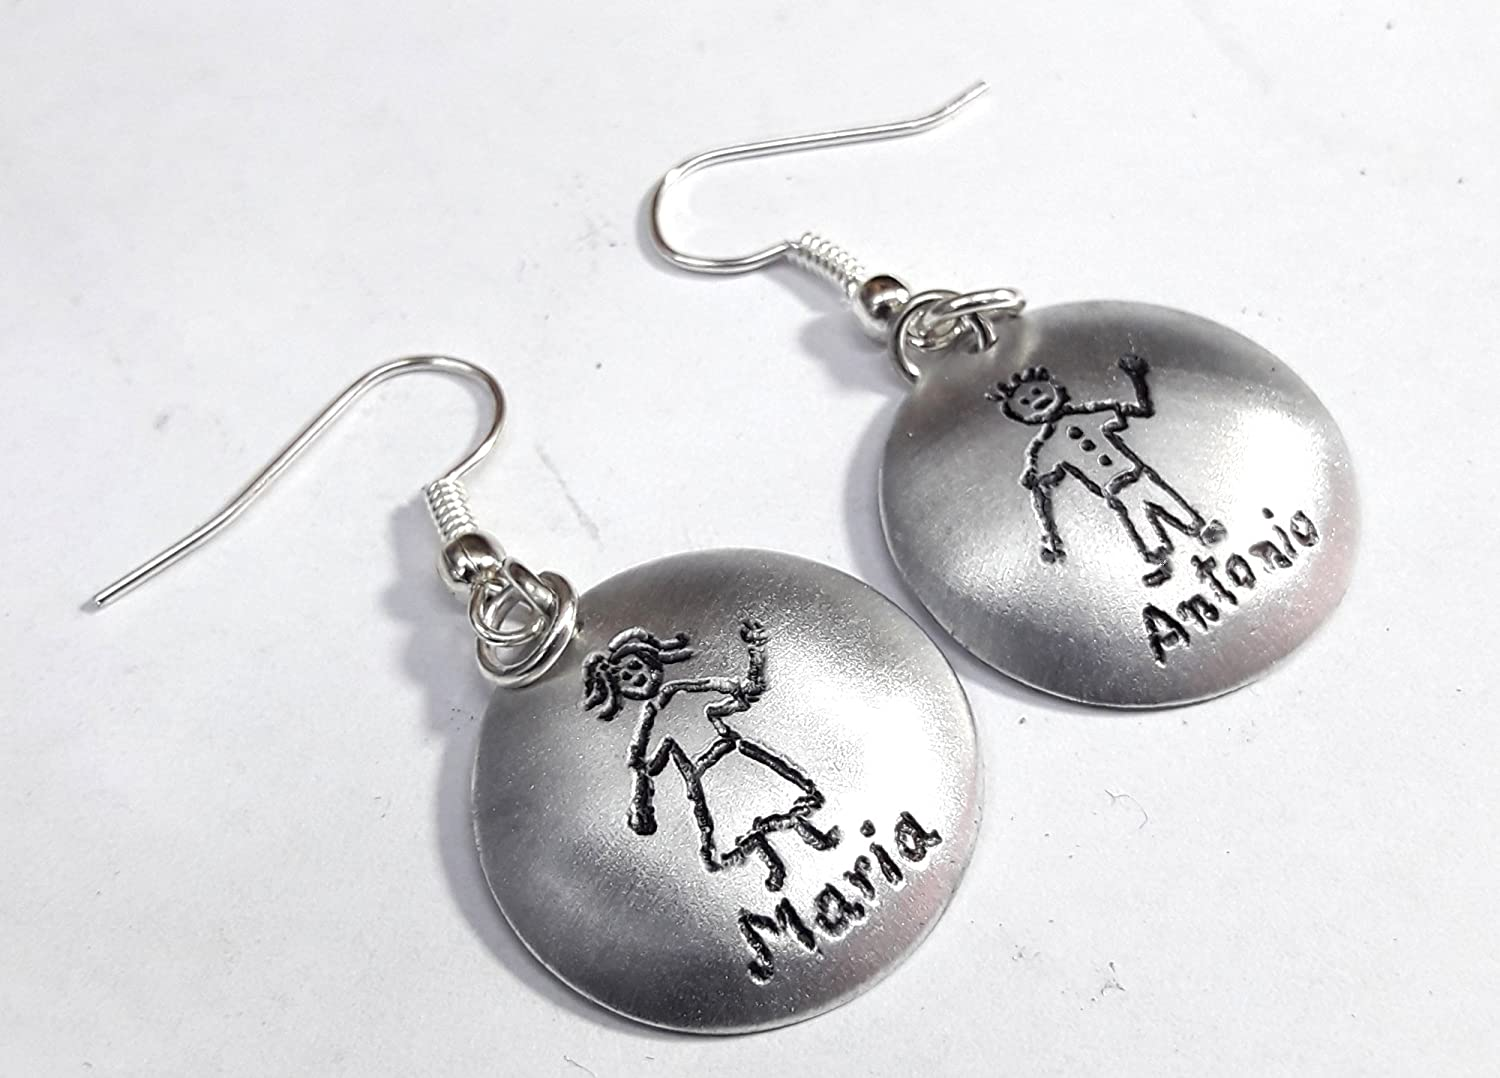 Aluminum earrings with engraving of human, and personalized names.